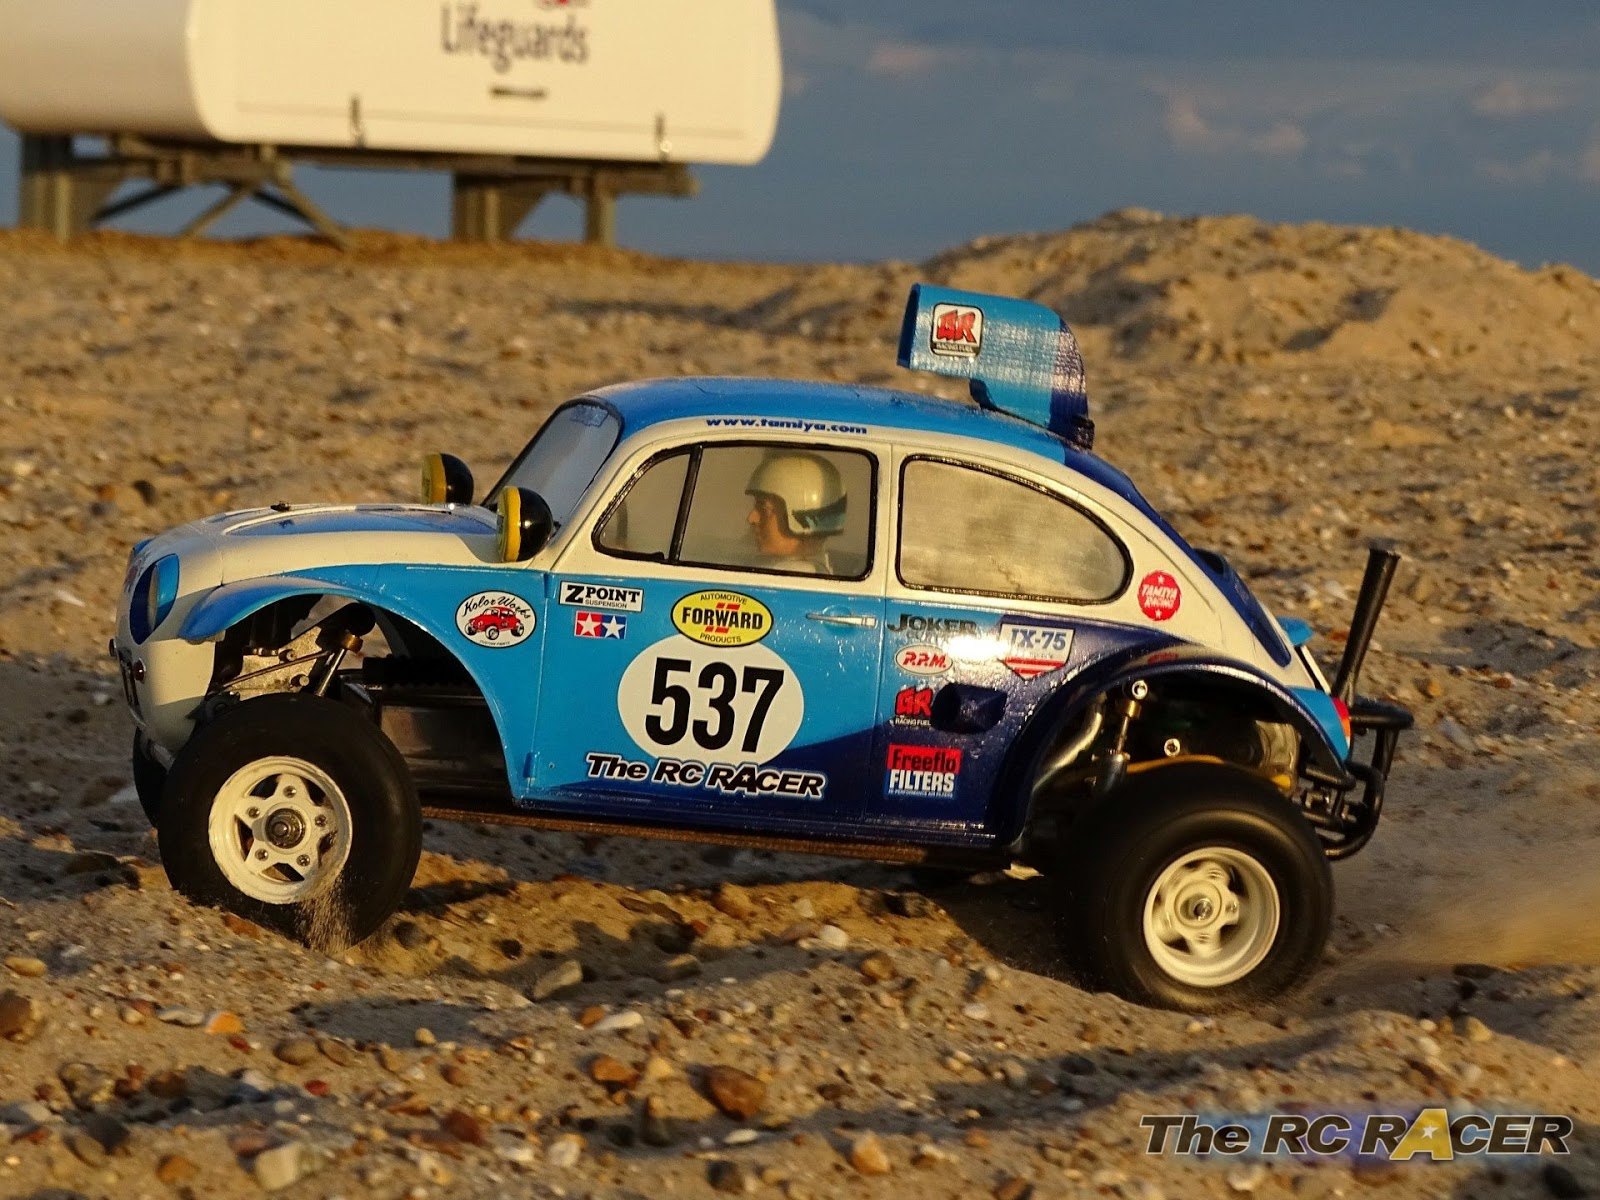 Tamiya SRB Sand Scorcher VW Baja Bug review | The RC